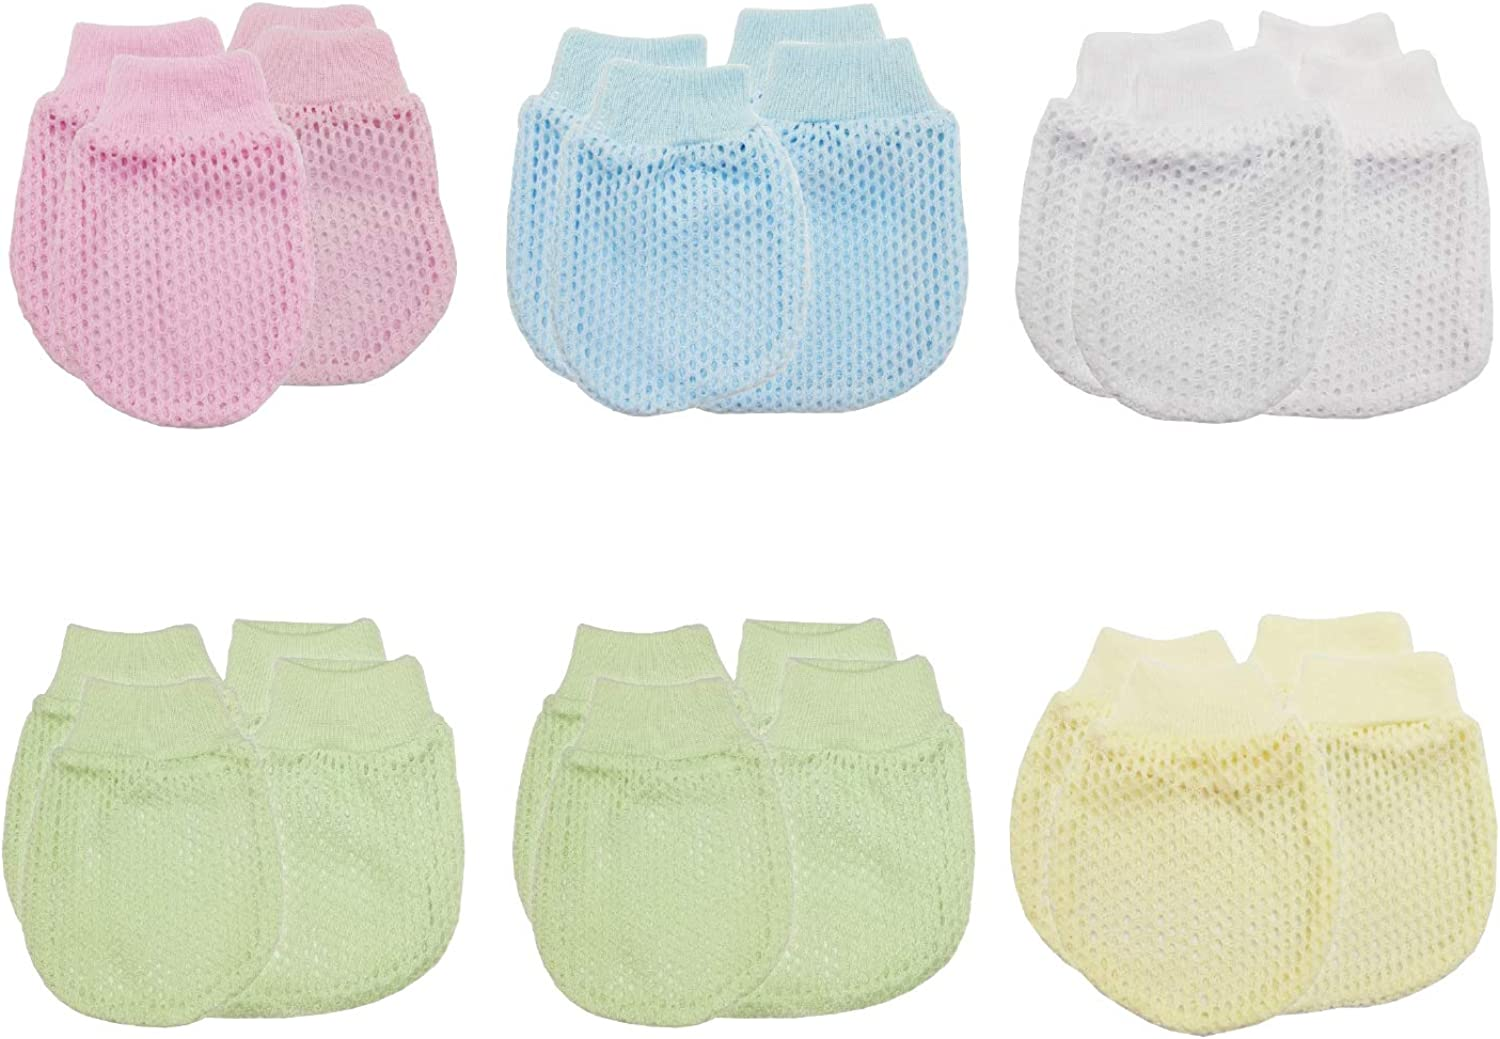 Newborn Unisex Baby Mitten and Booties, Infant Gloves and Socks, Breathable, 100% Cotton for 0-12 months